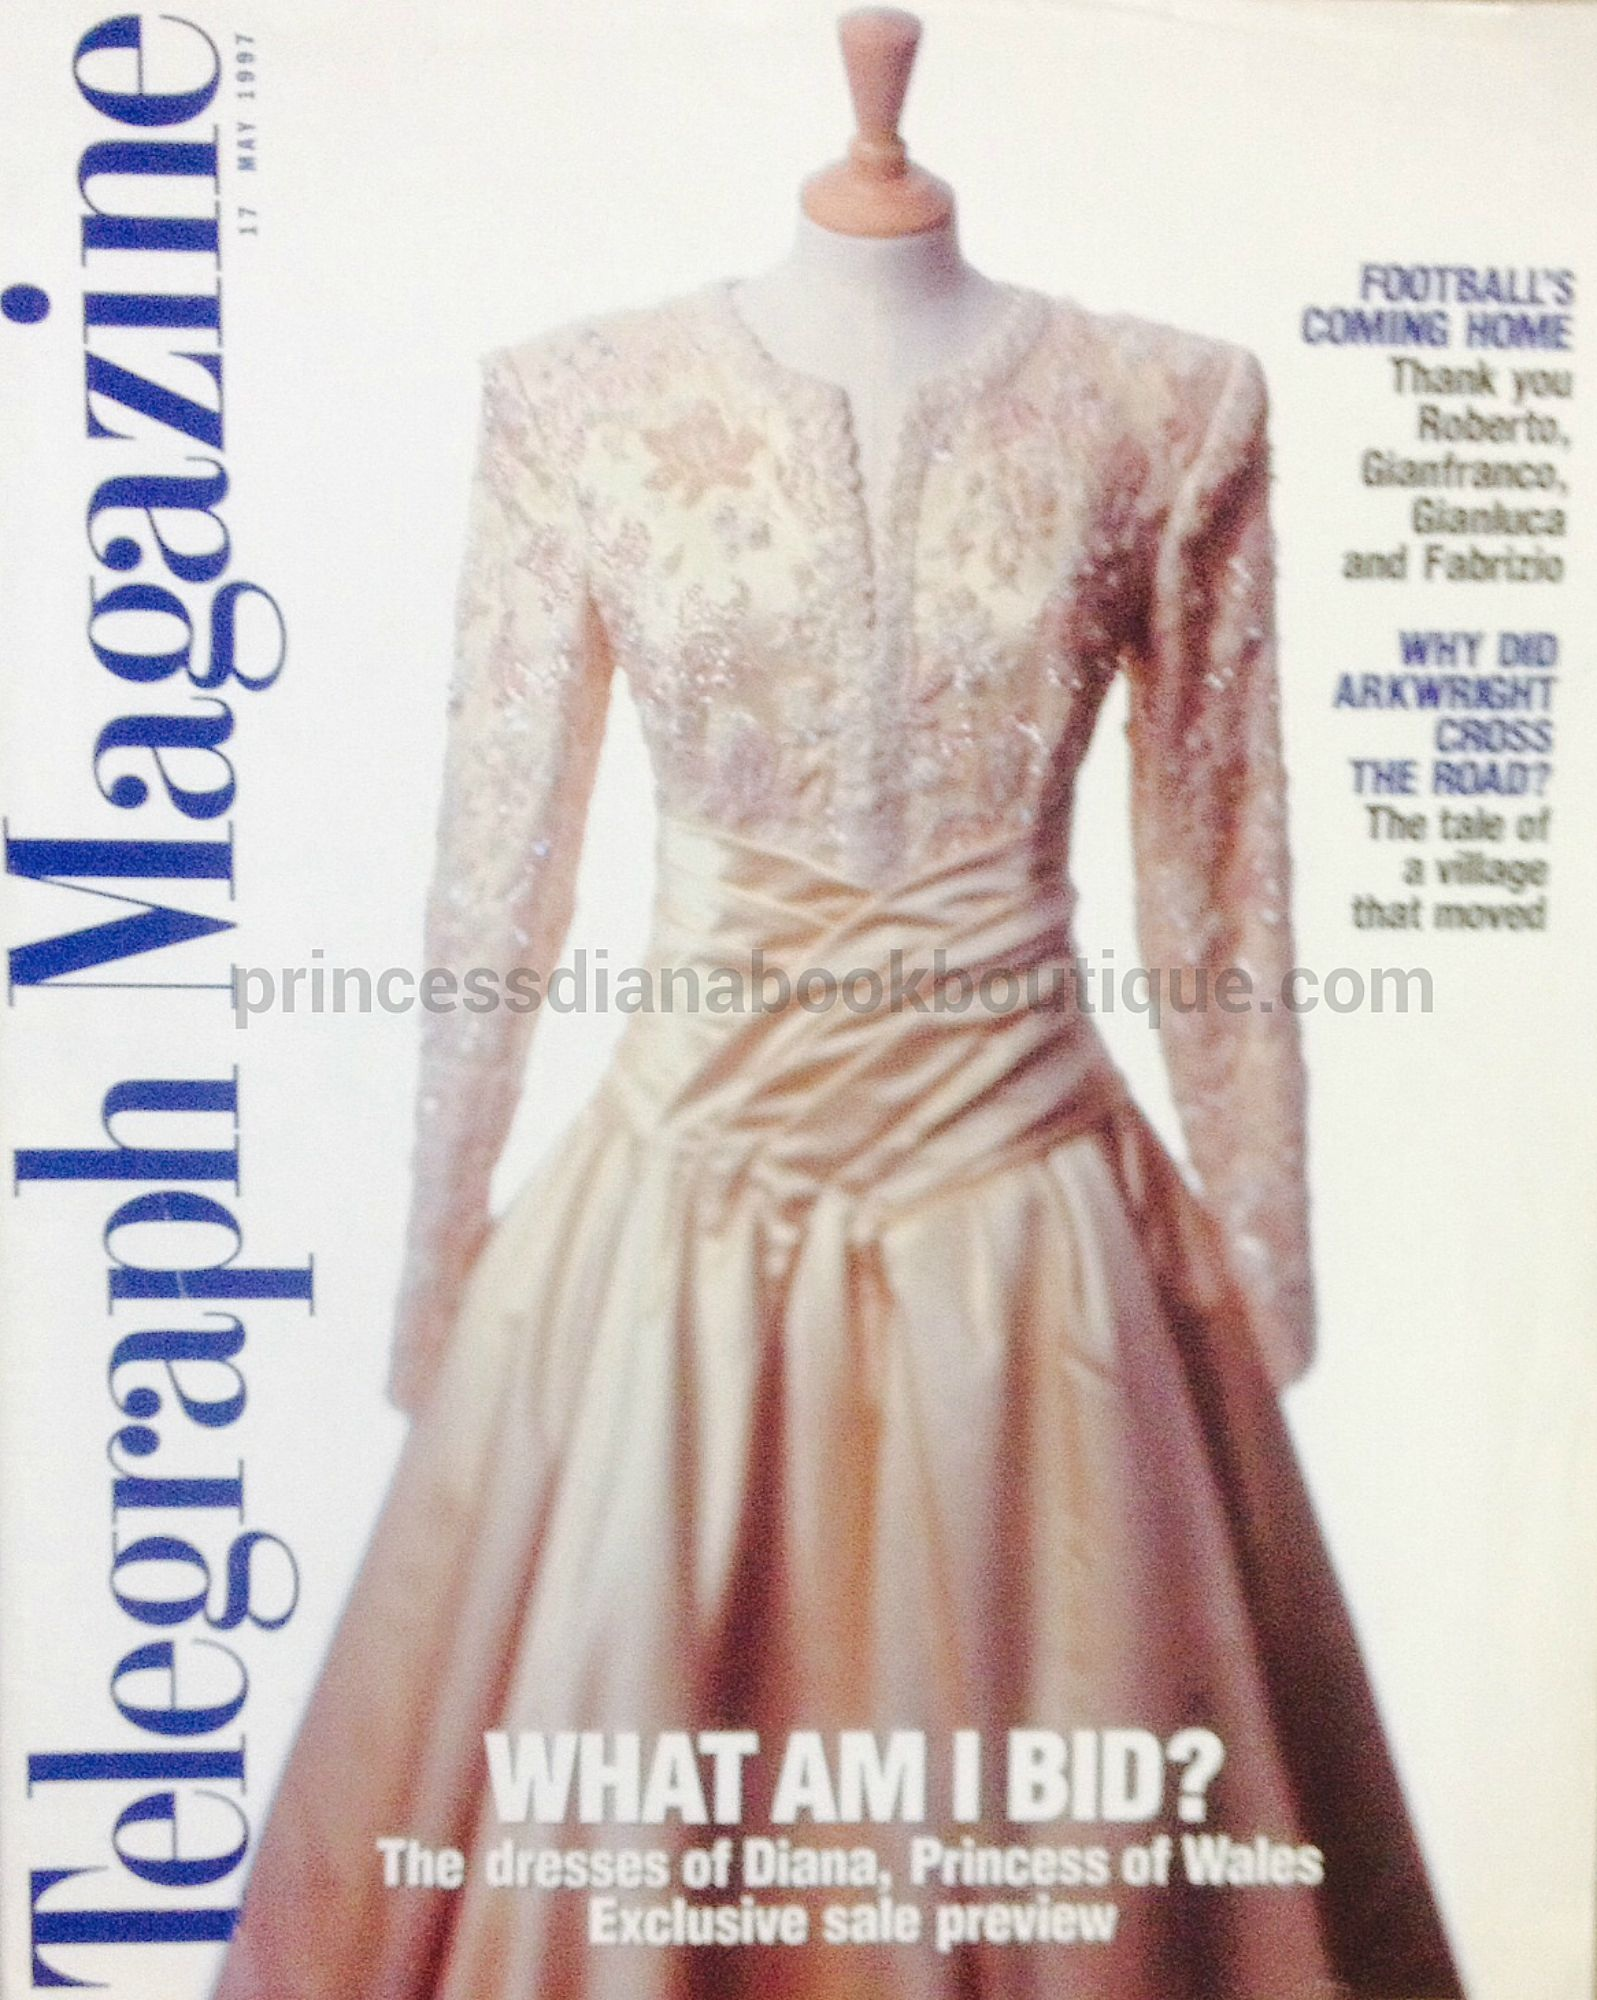 Princessdianabookboutique Com: OUR RARE PRINCESS DIANA COLLECTABLE TODAY IS FROM 1997